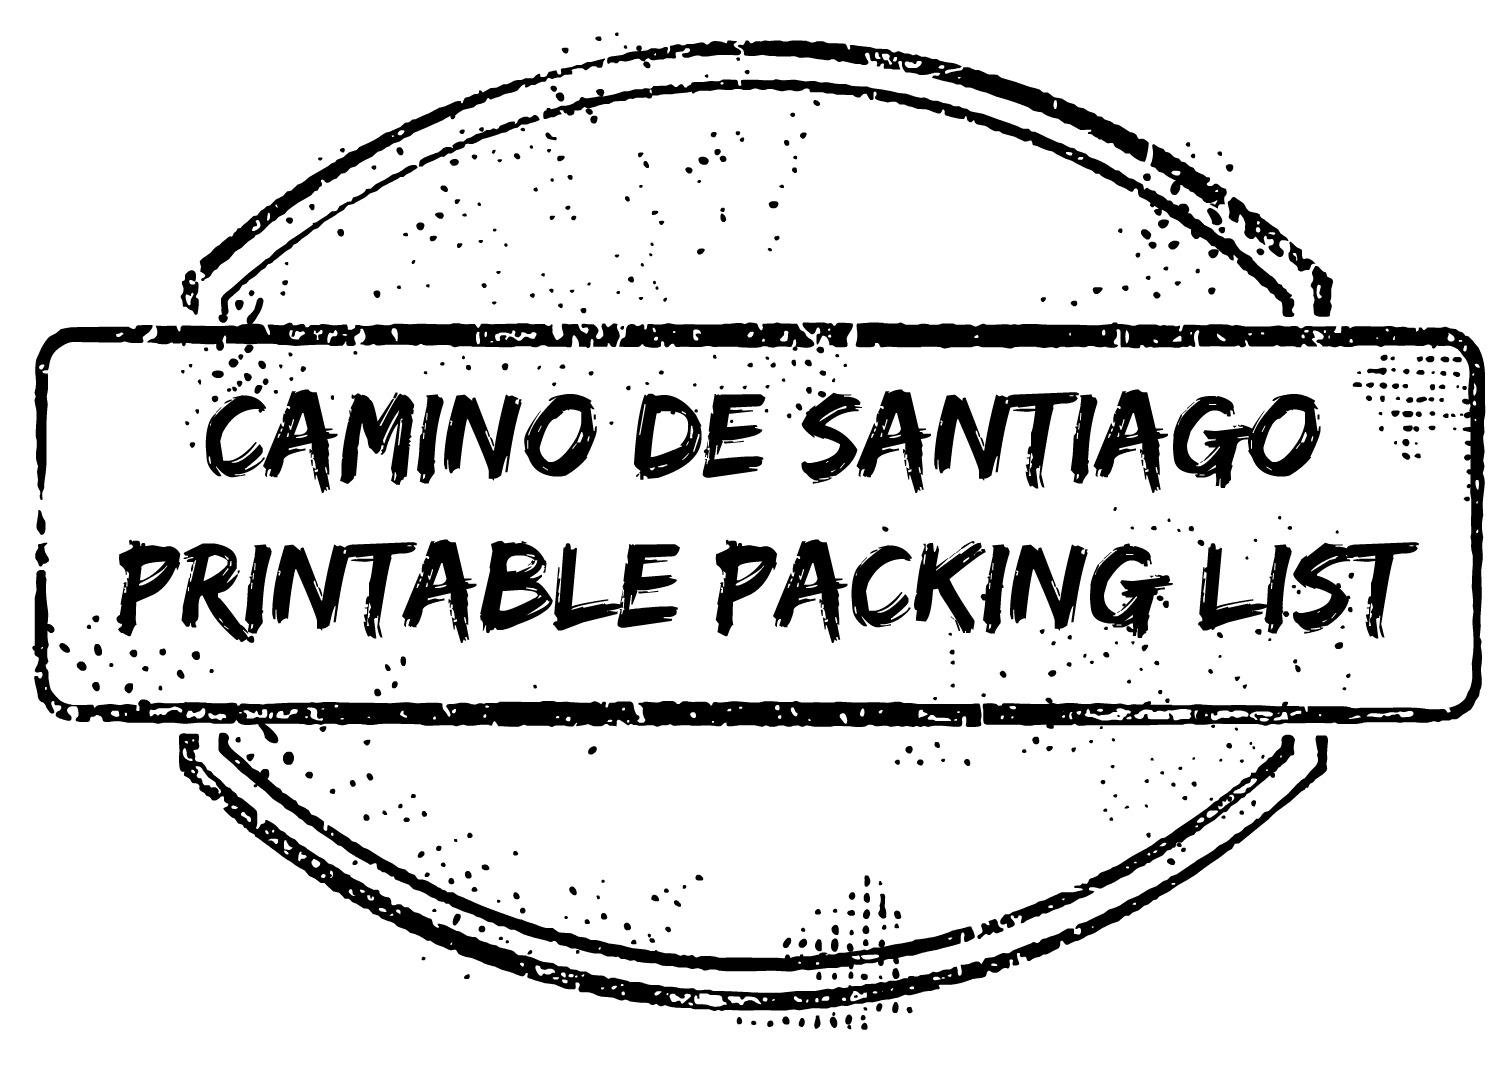 Camino Santiago Packing List Camino De Santiago Printable Packing Checklist Gabriel Schirm